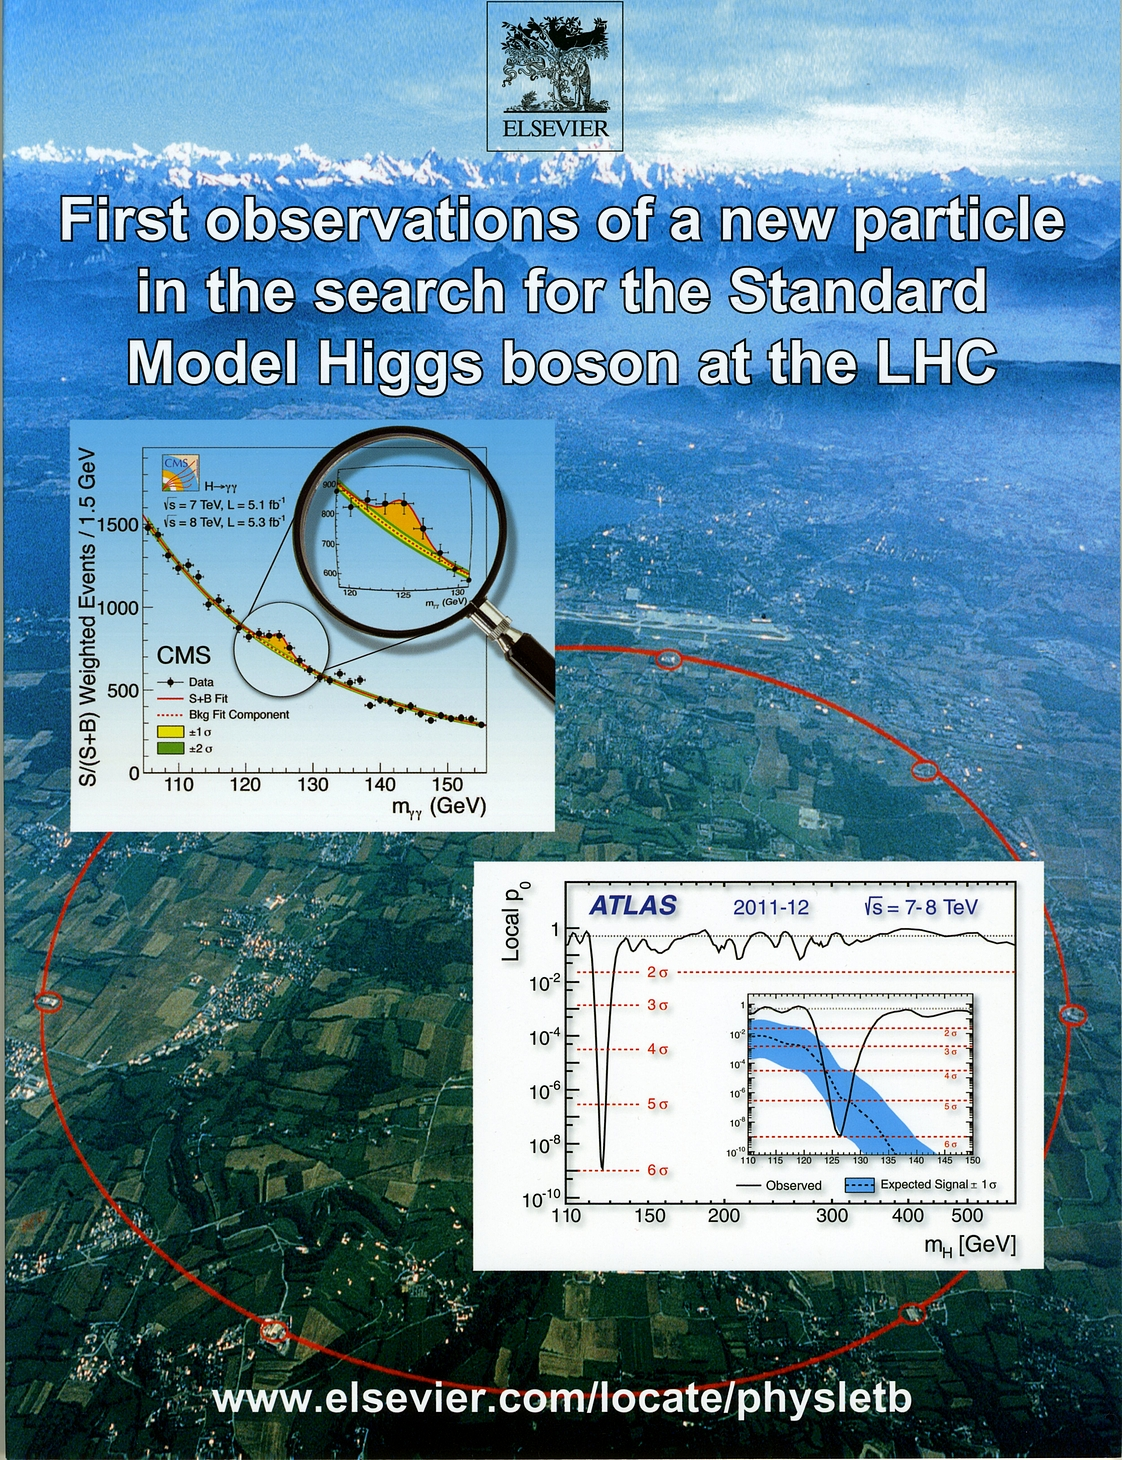 Higgs-like particle discovery